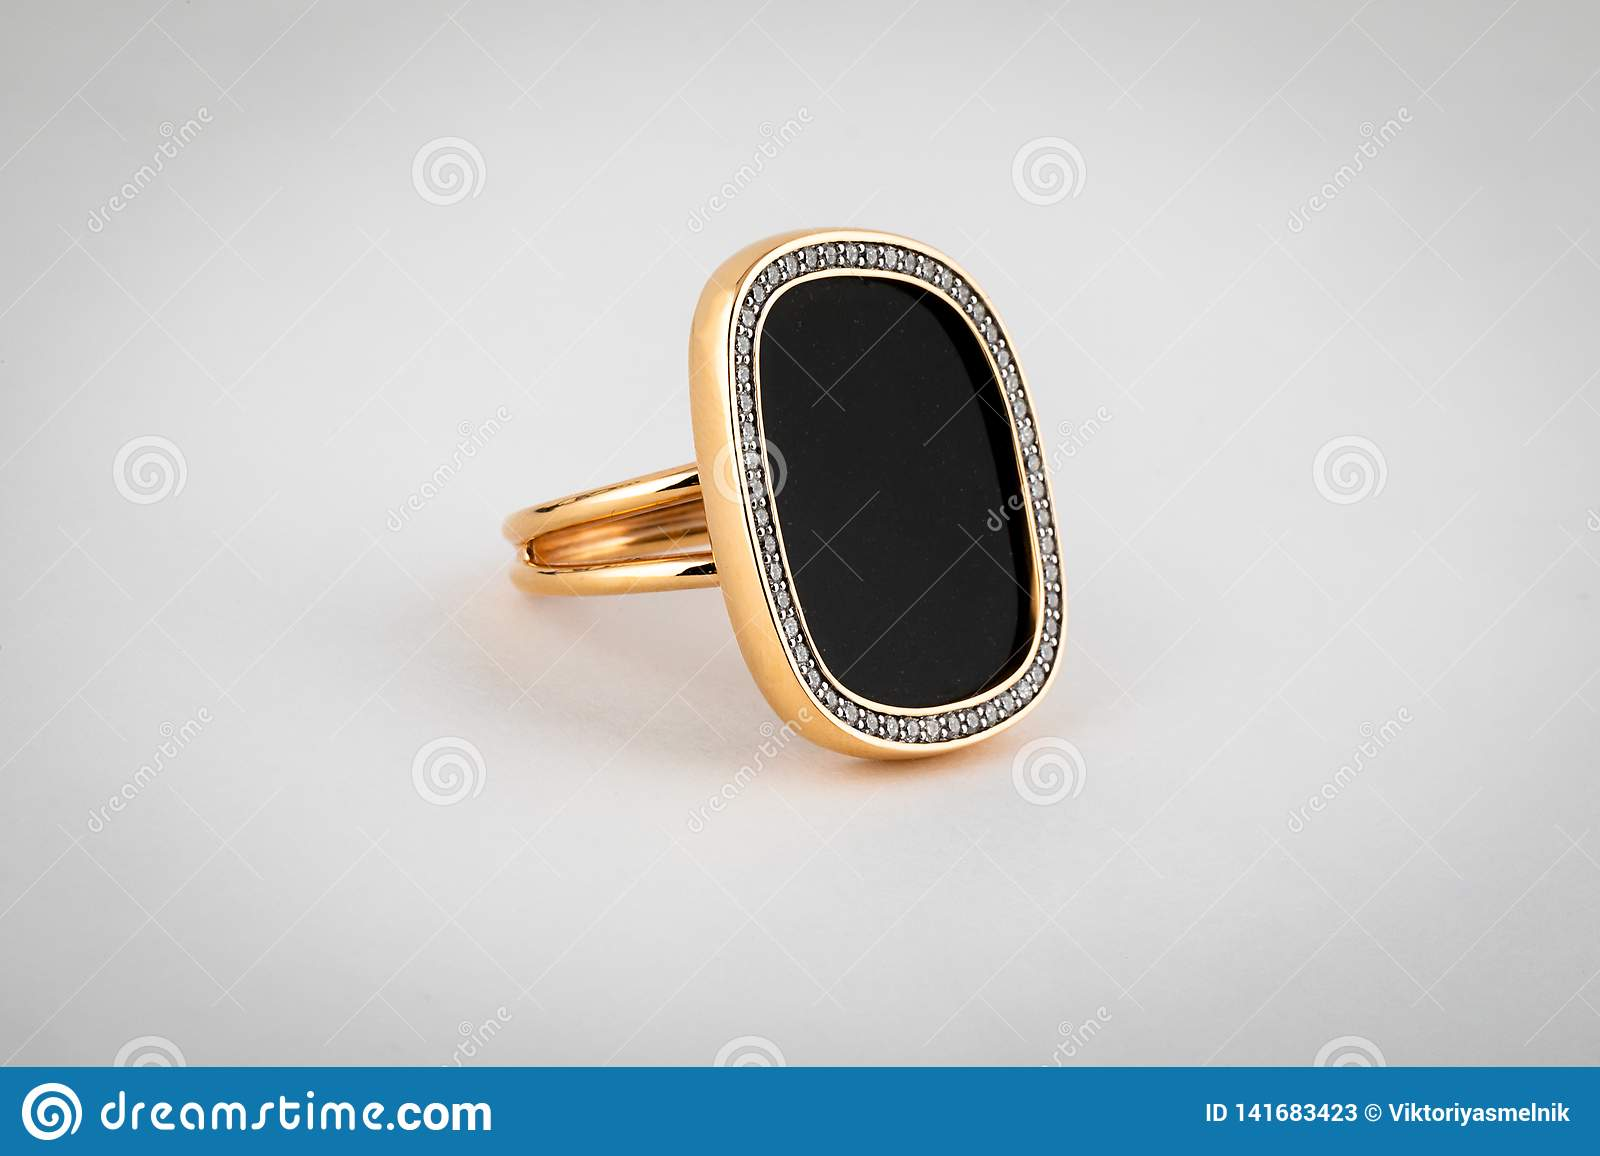 Female, Gold Ring With A Large Black Stone In The Middle, On